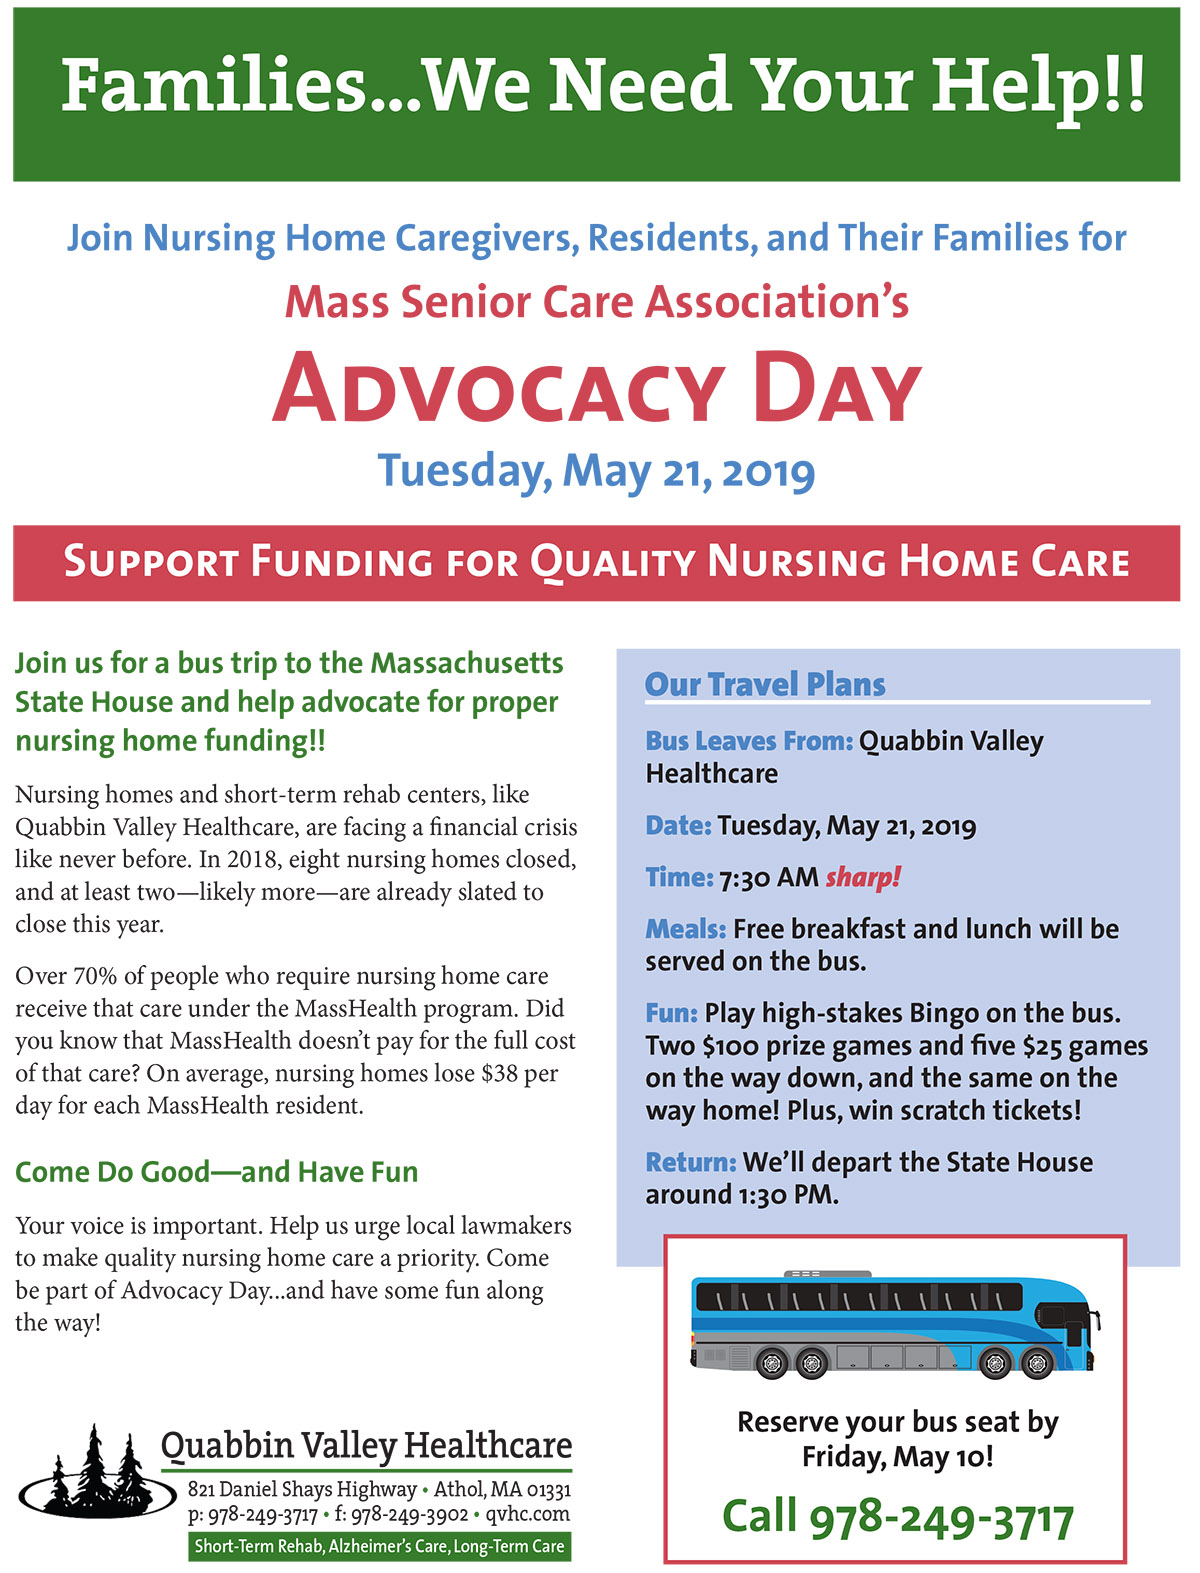 Advocacy Day! - Quabbin Valley Health Care on home occupational therapy, home care logo design, dental care plans, assisted living plans, home day care plans, chiropractic care plans, nursing home design plans, home care care plans, home anatomy, palliative care plans, social work care plans, home nursing charting, asthma care plans, hospice care plans, i centered care plans, home emergency plans, home care services, long term care care plans, health care plans, home nursing medicare,